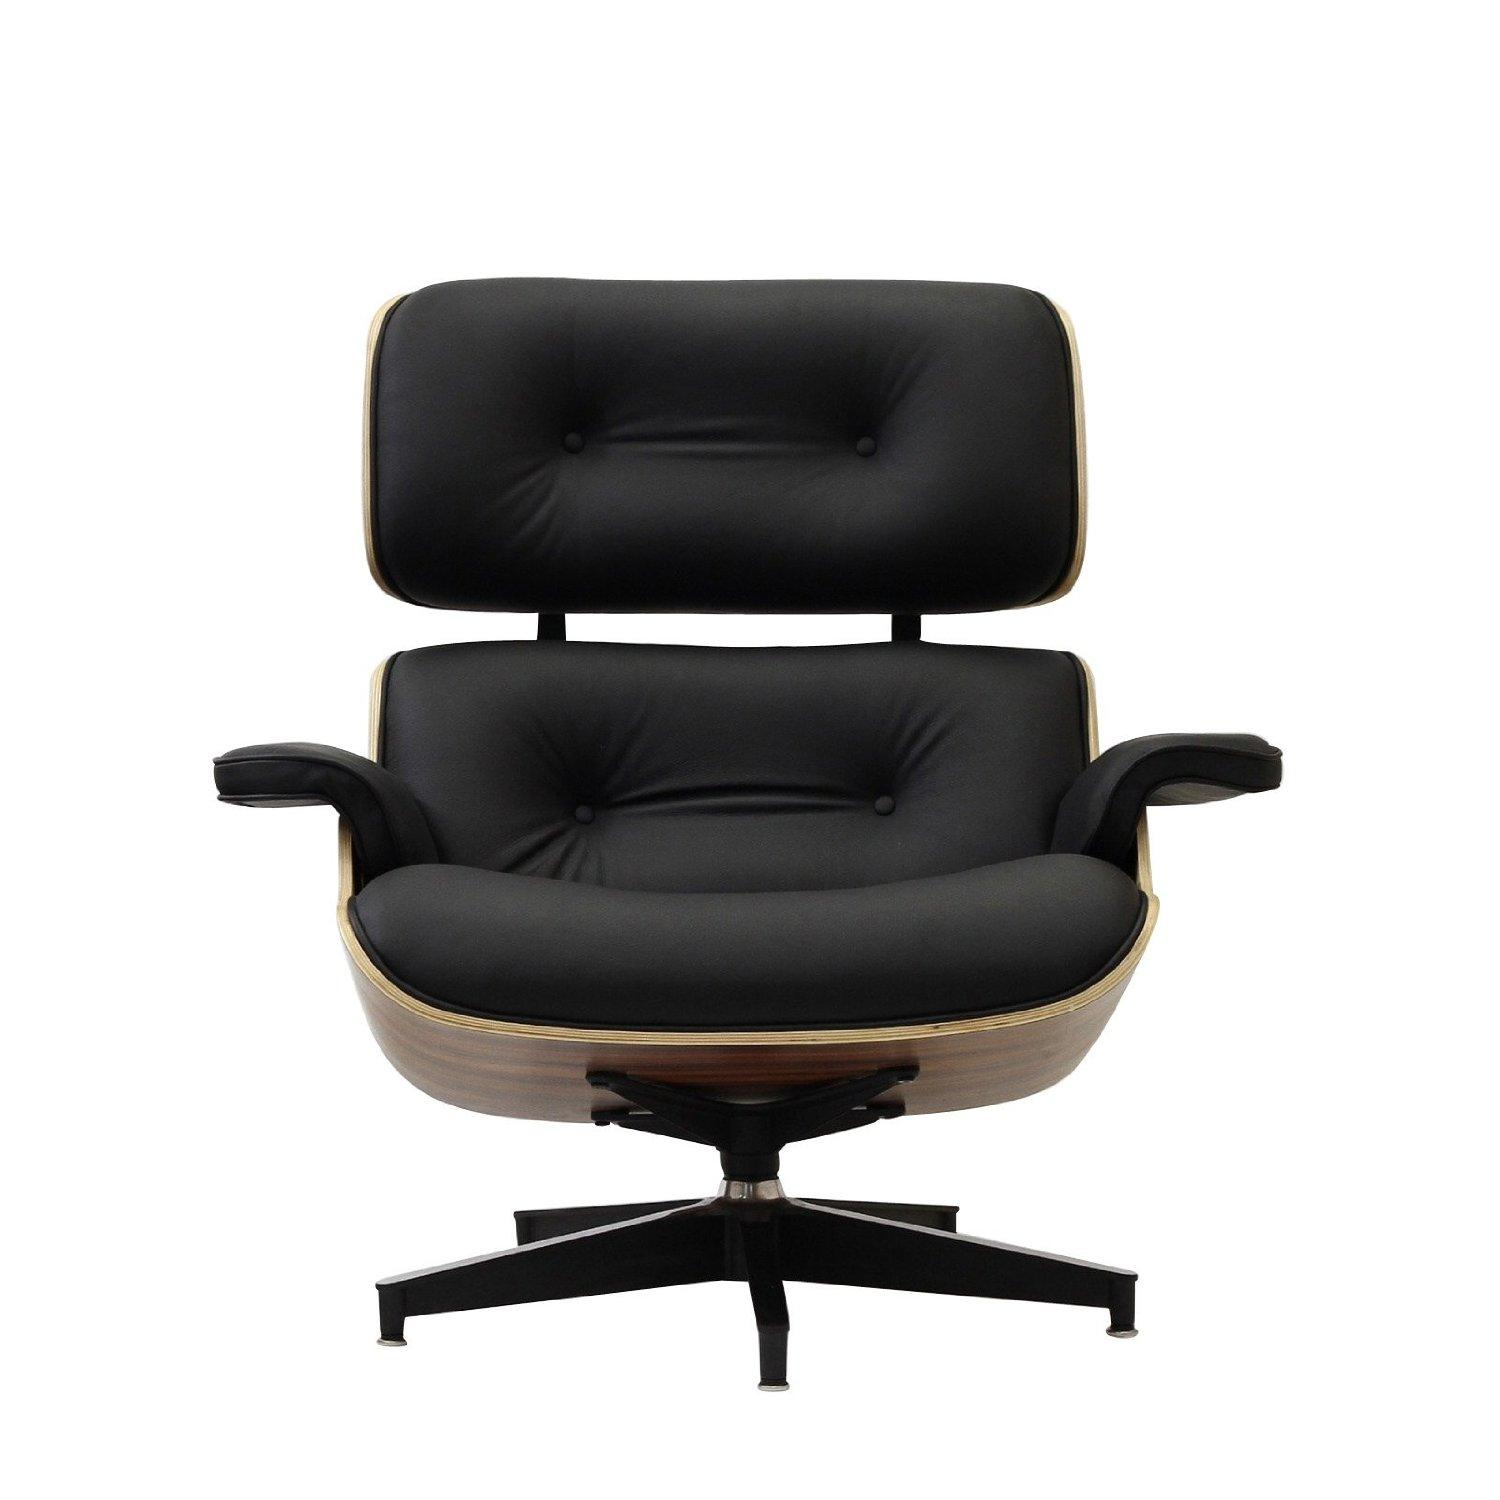 Eames mid century mid century modern eames lounge for Amazon chaise longue